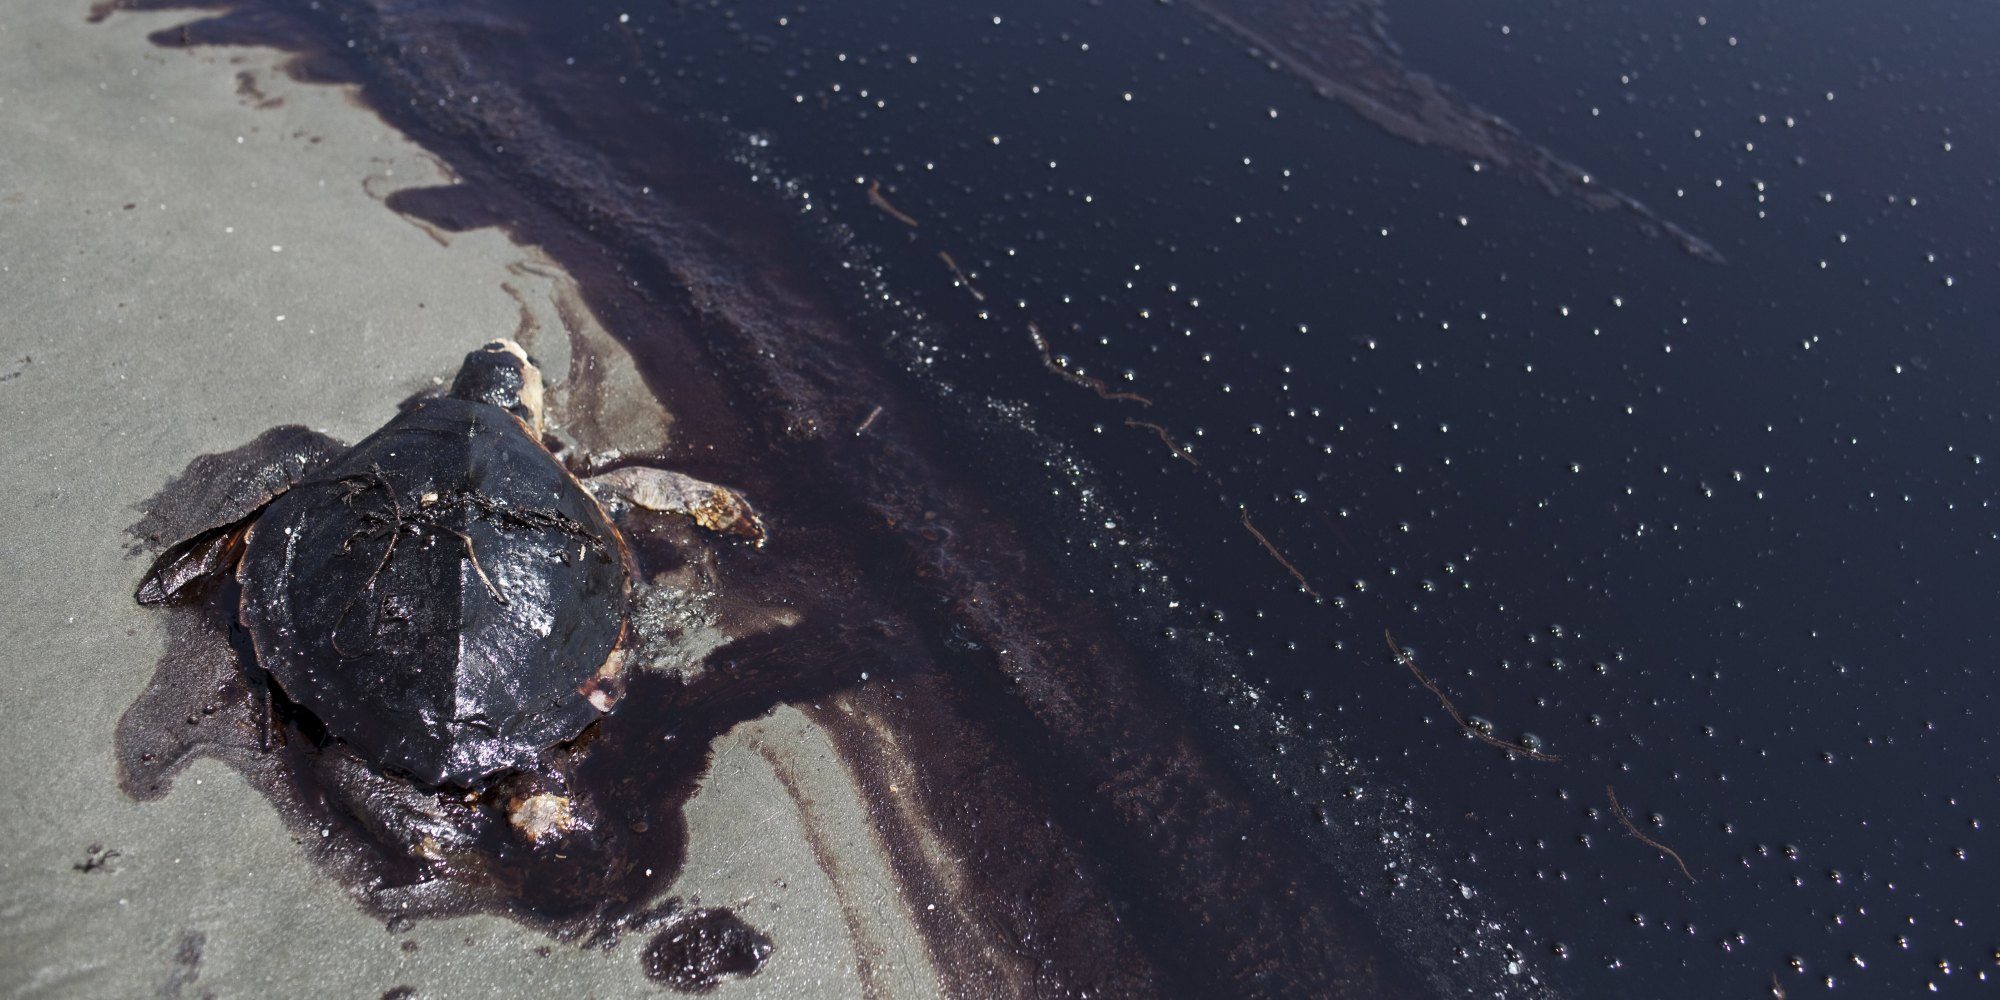 Bp oil spill photos College rules Search Results Free Nude Pictures and